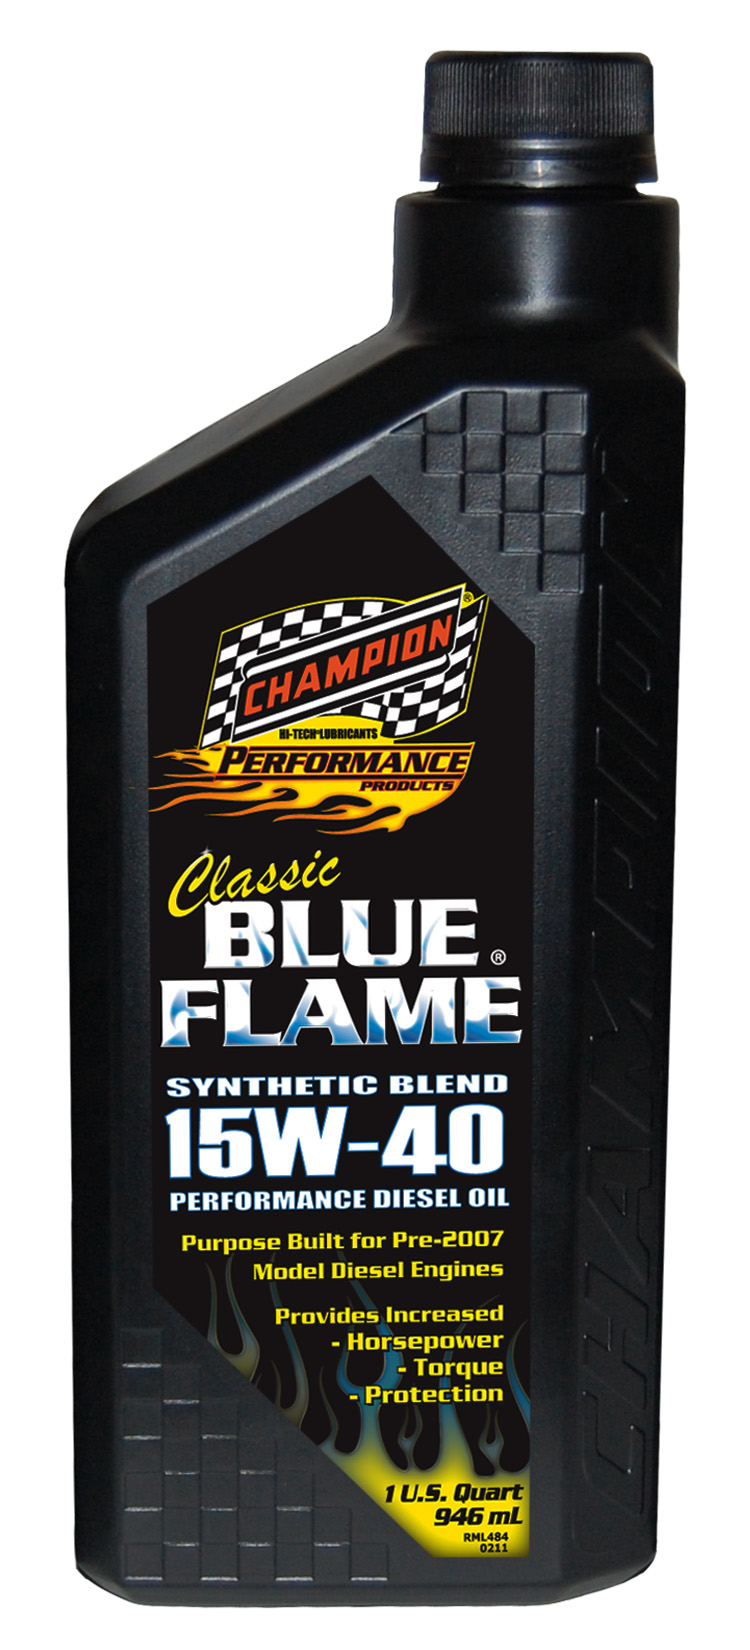 New at summit racing champion motor oil and lubricants for Why use synthetic blend motor oil